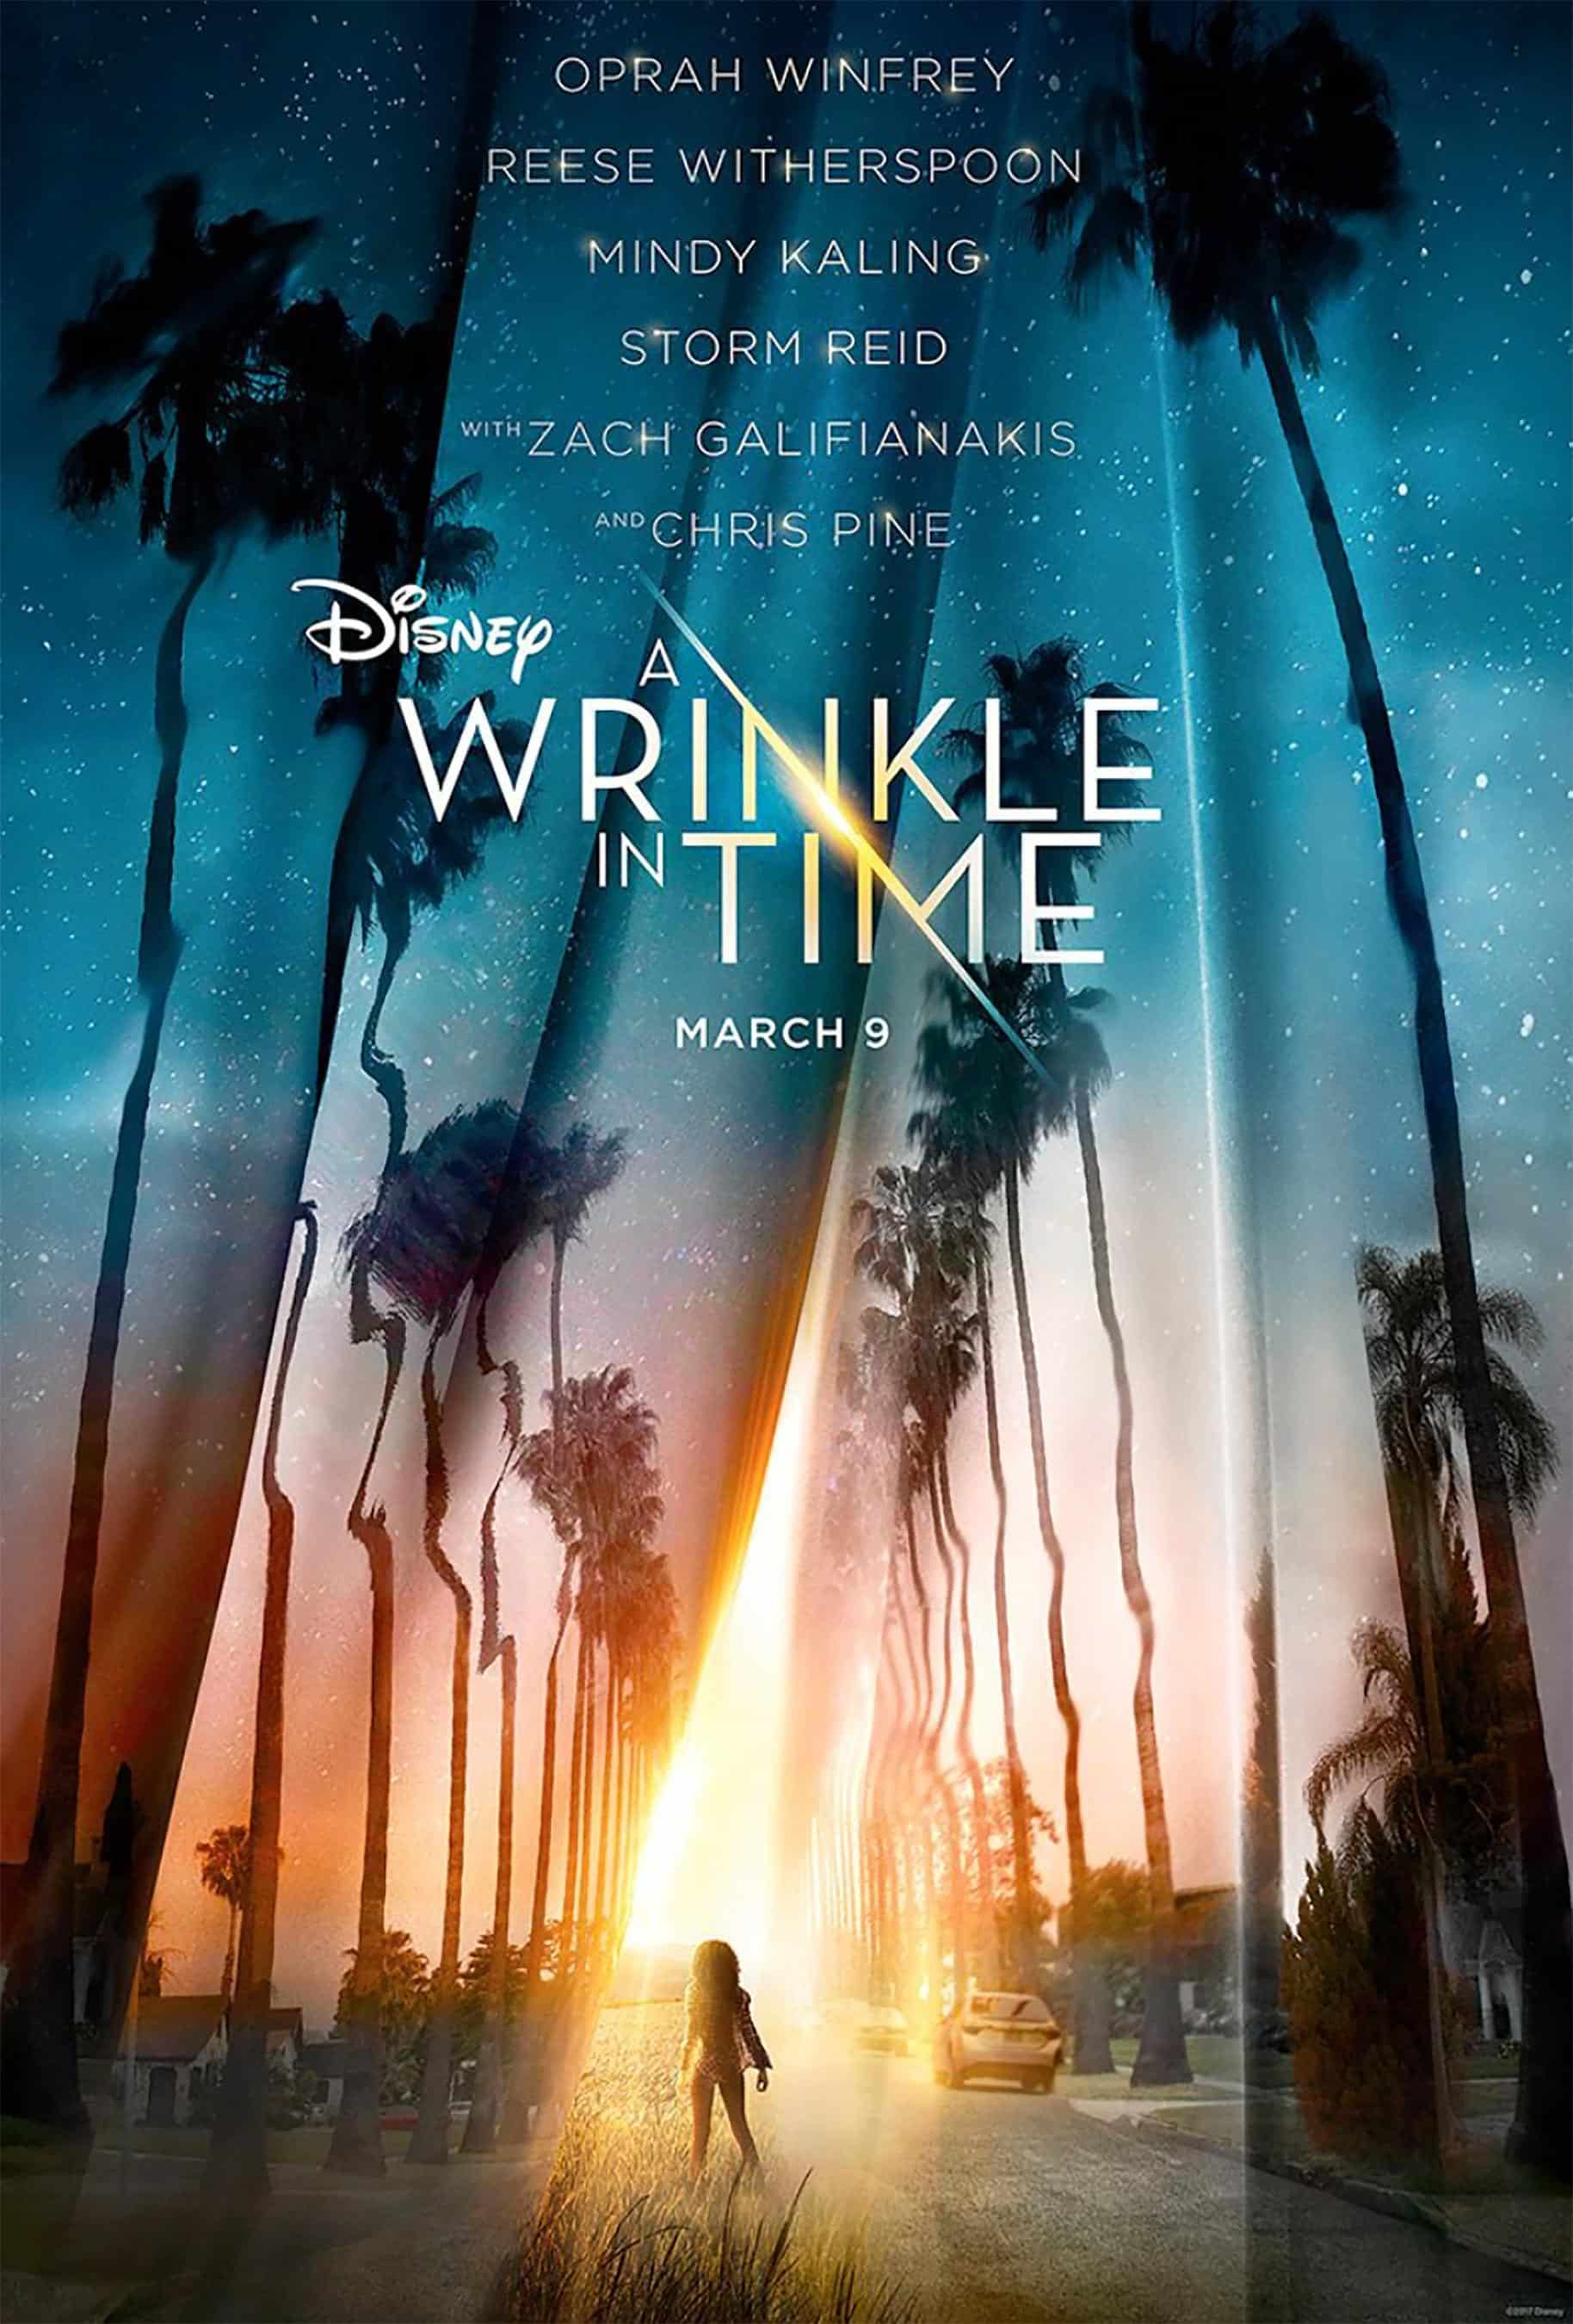 Oficiálny plagát filmu A Wrinkle in Time